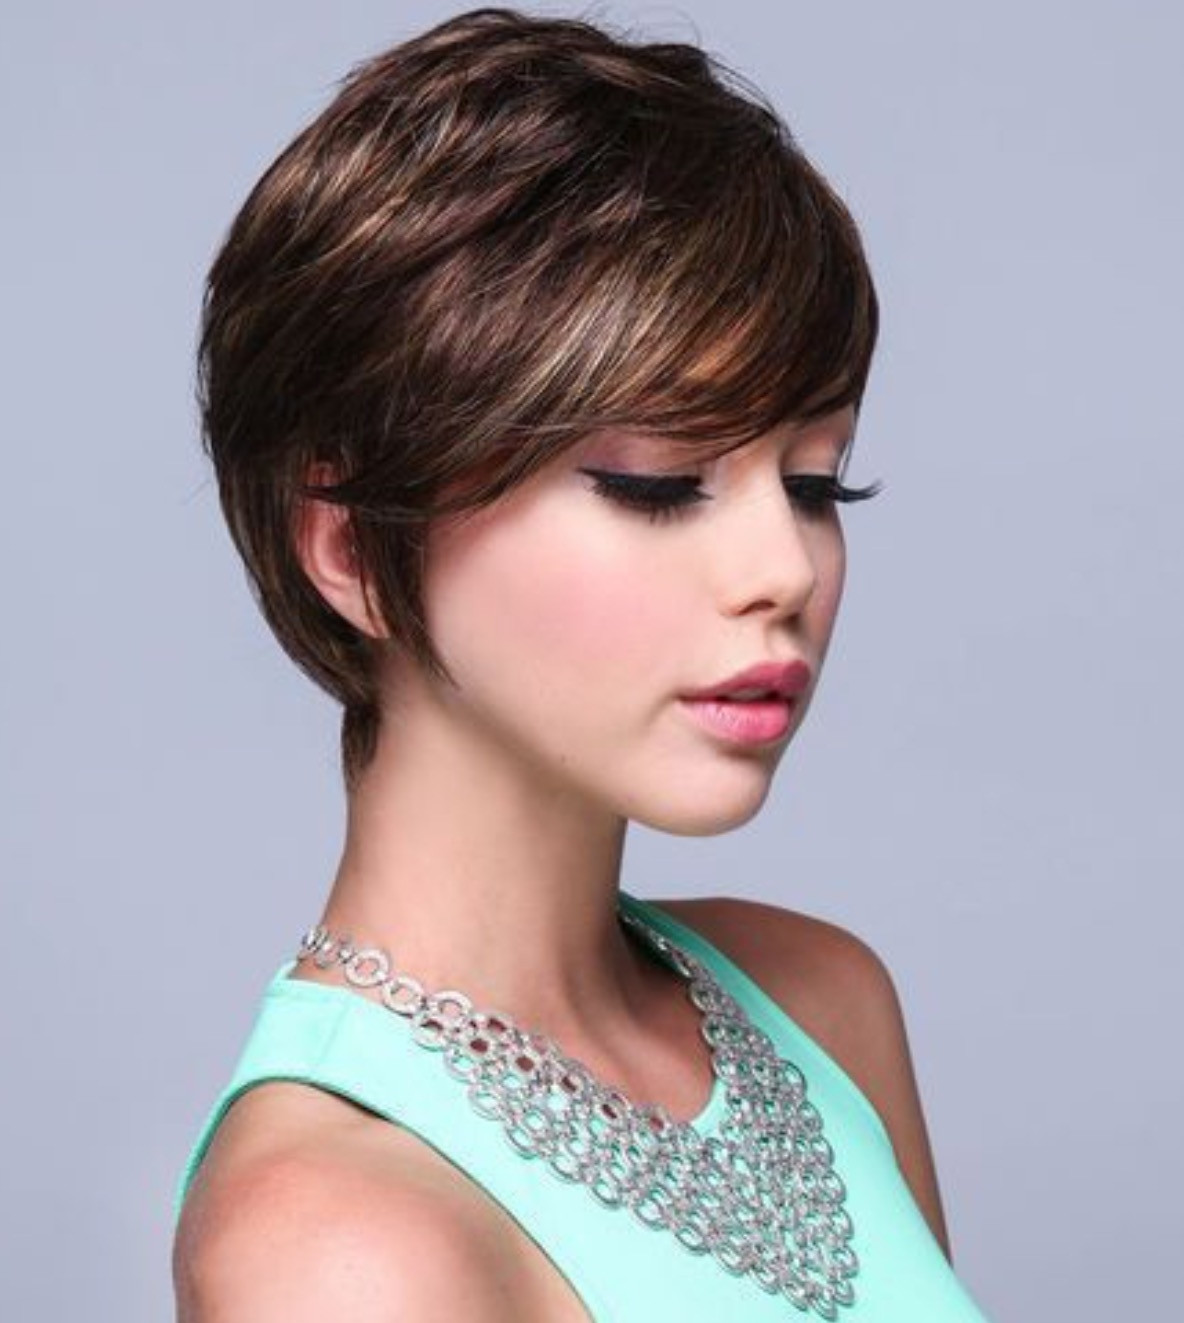 Best ideas about Cute Pixie Hairstyles . Save or Pin Top 15 of Cute Long Pixie Hairstyles Now.